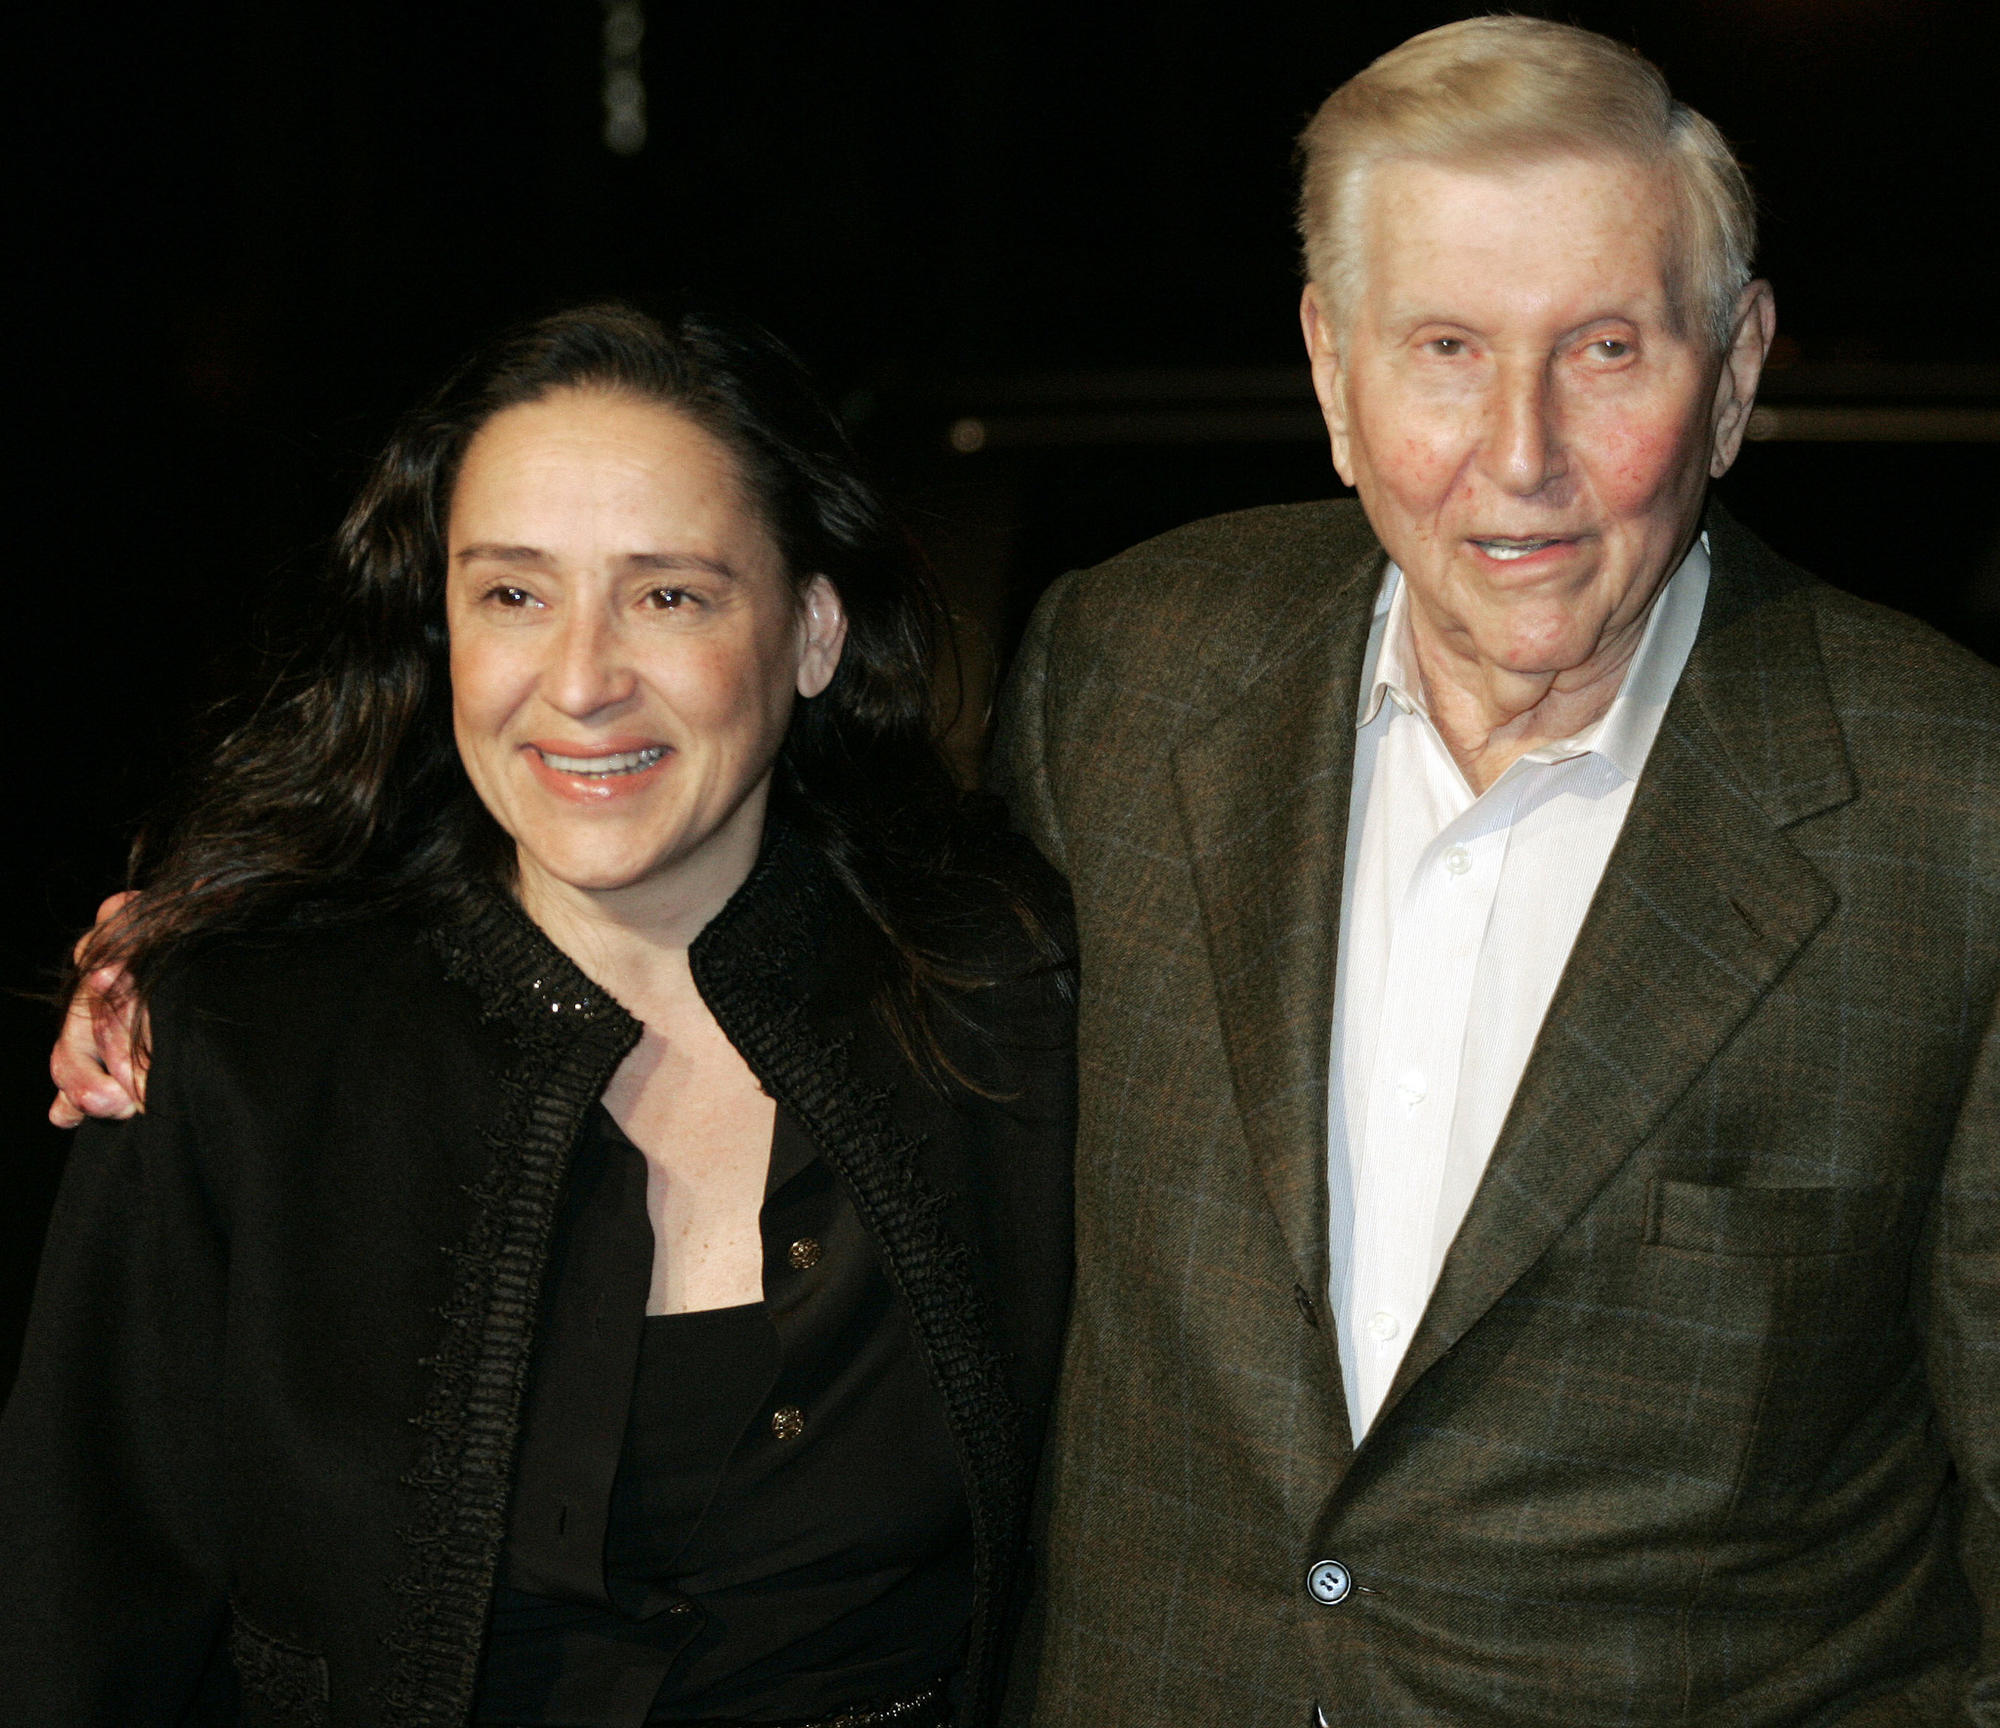 Sumner Redstone and then-wife Paula Fortunato in 2007.